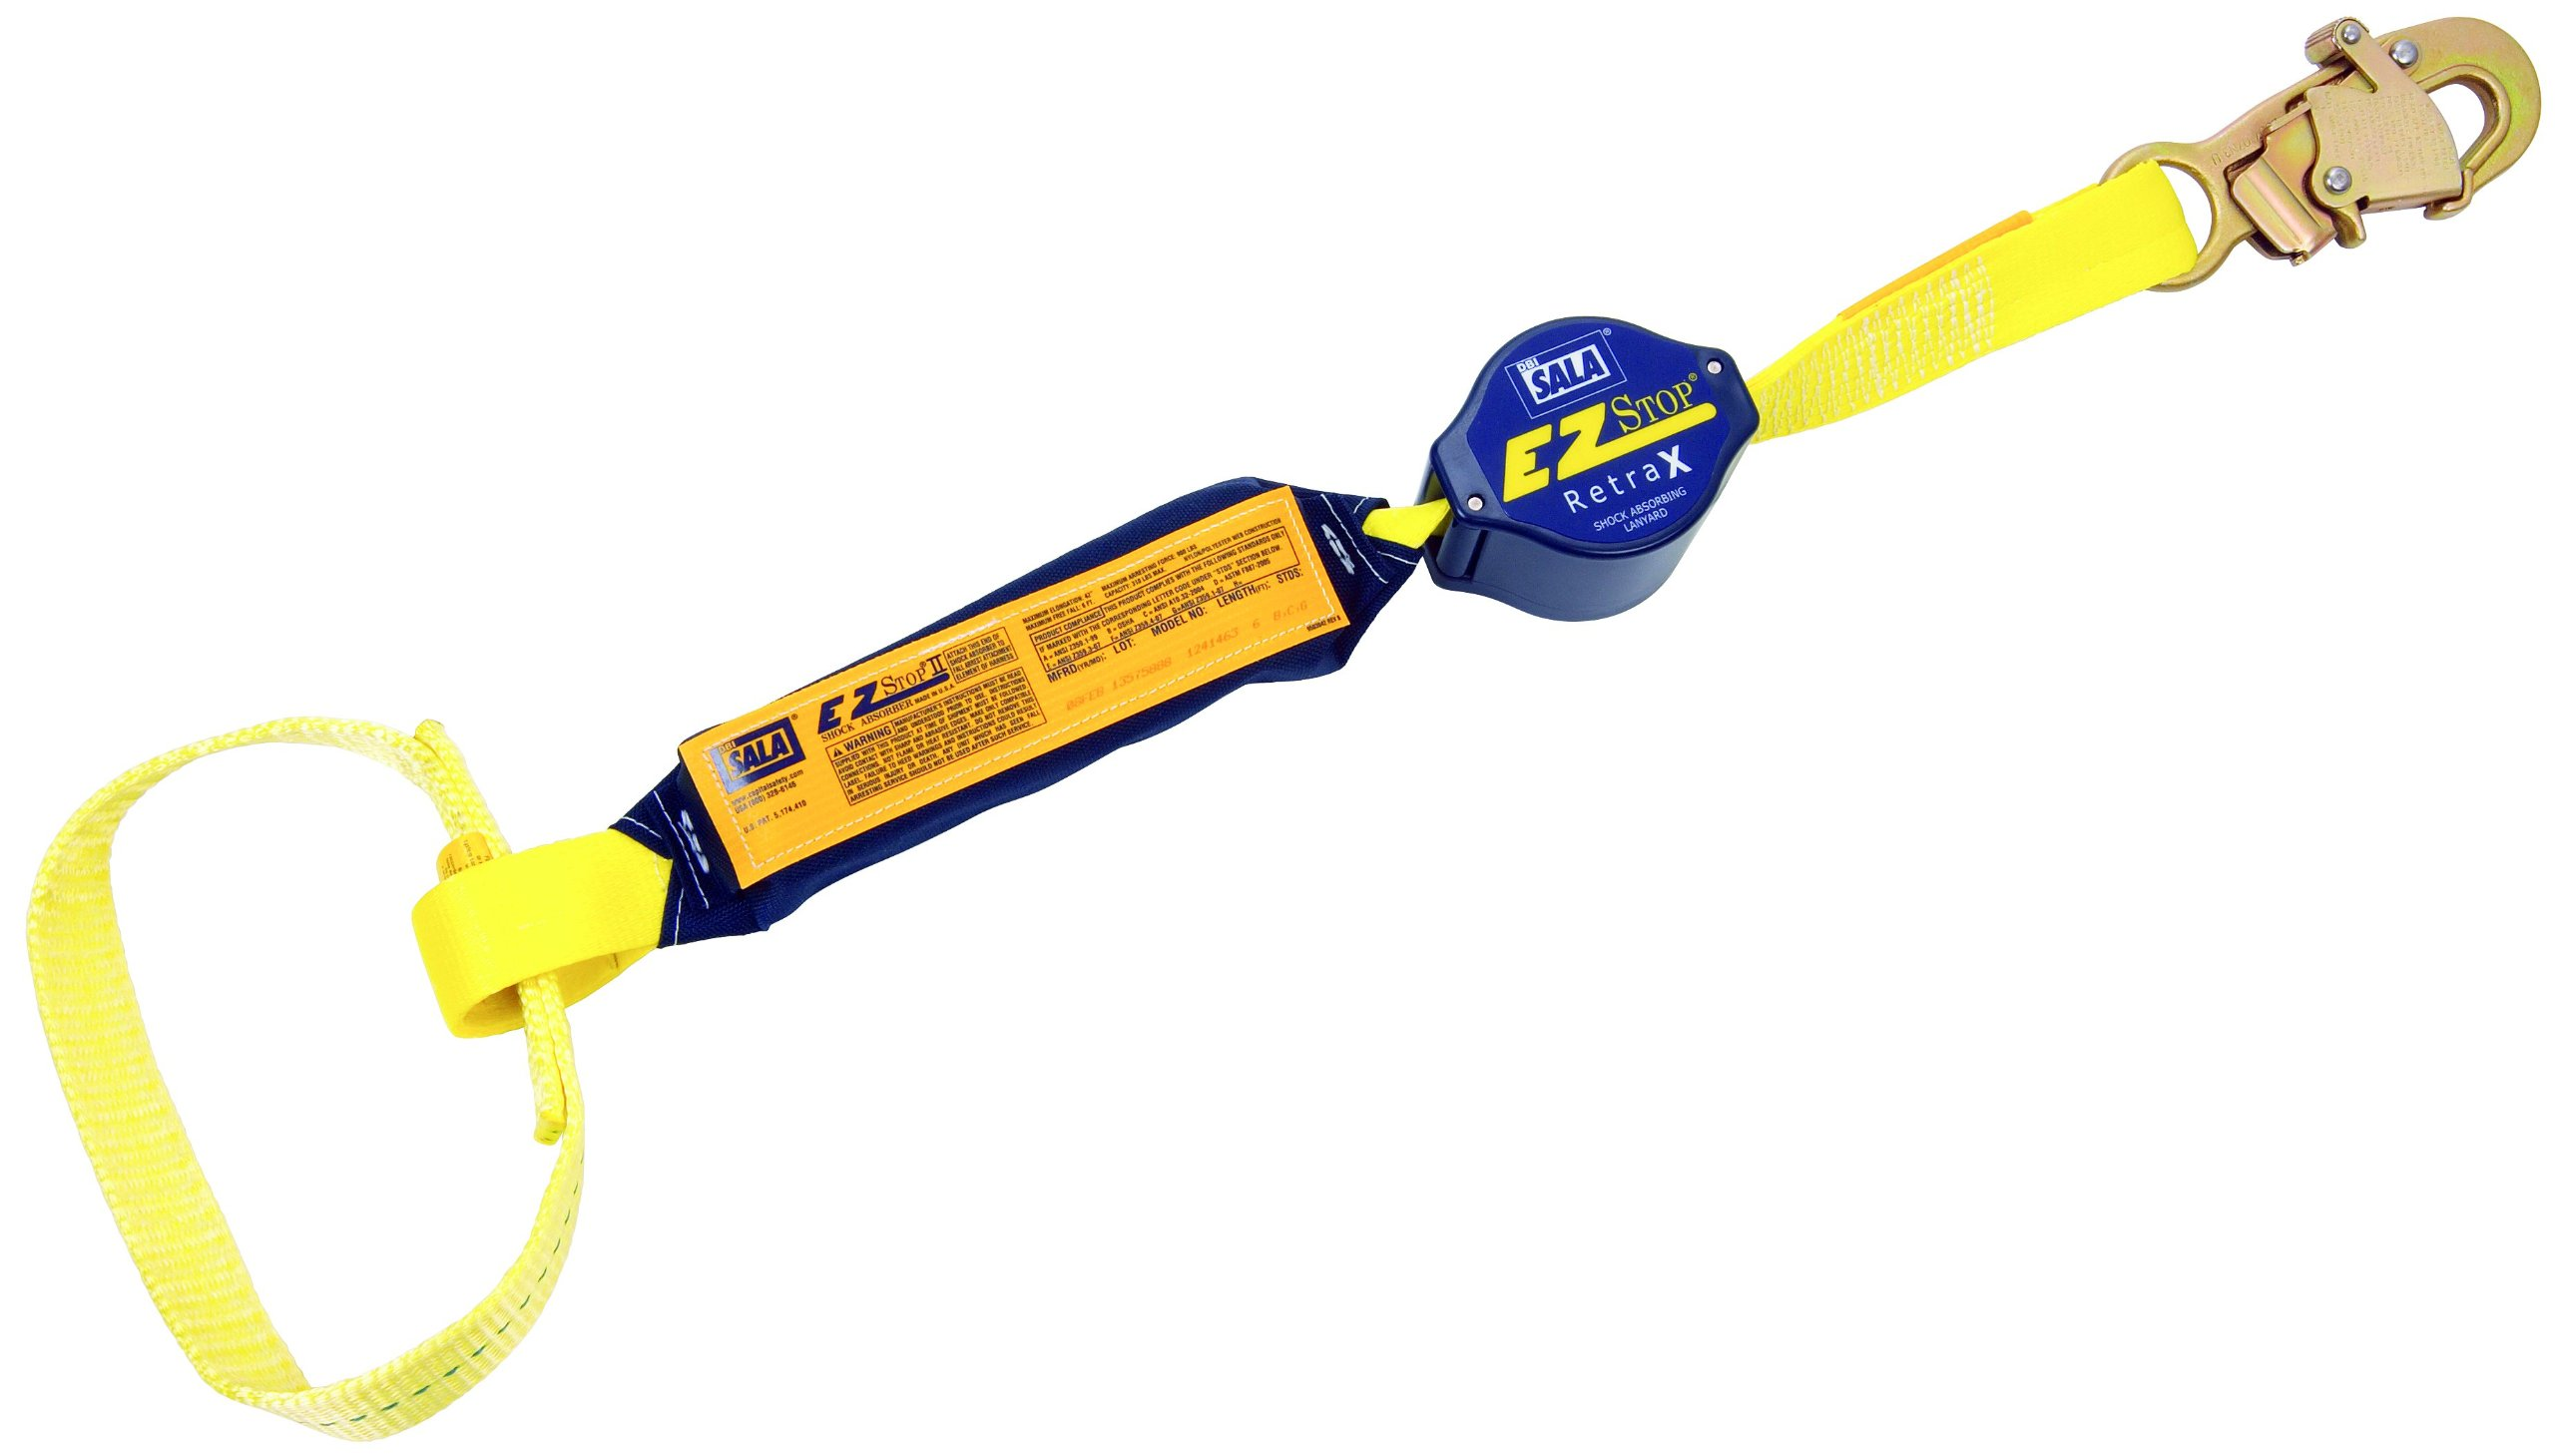 3M DBI-SALA Retrax 1241463 Shock Absorbing Lanyard, 6' Single-Leg Retractable Web and Snap Hook At One End, Web Loop Choker At Other End, Navy/Yellow by 3M Fall Protection Business (Image #1)